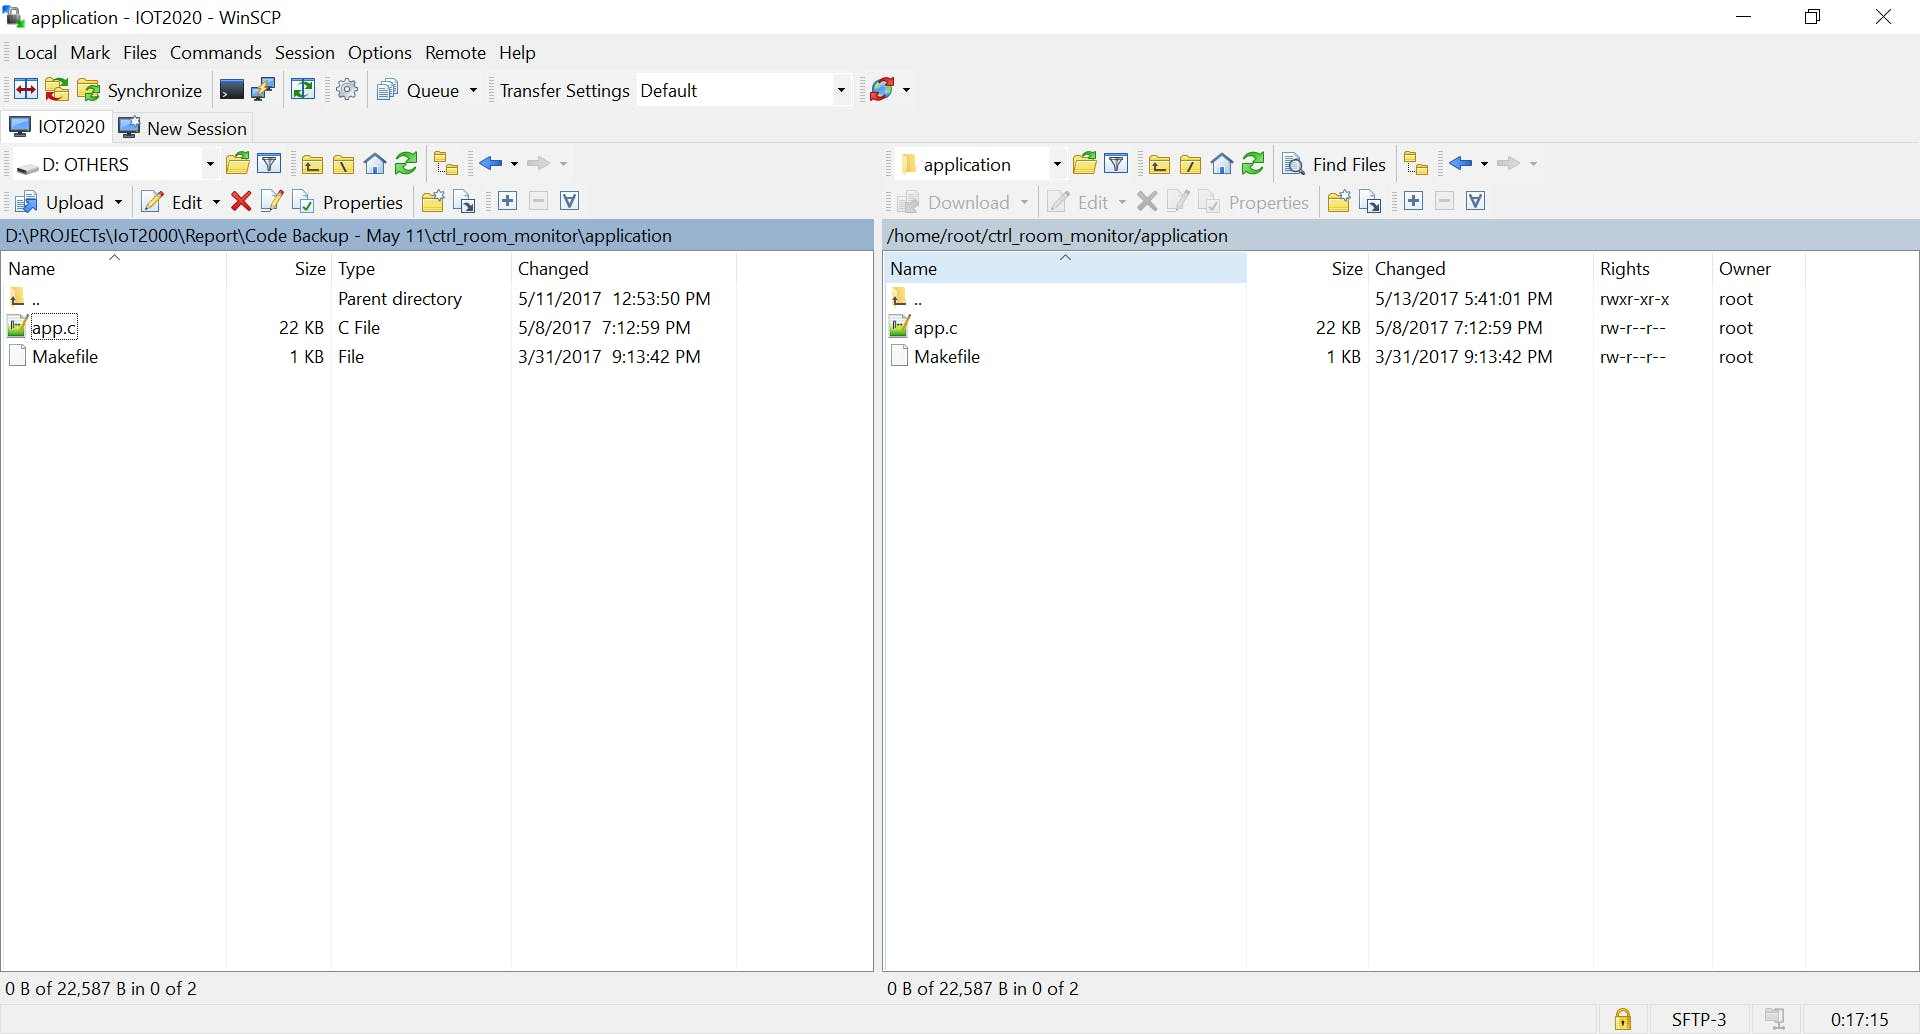 Copying application building files